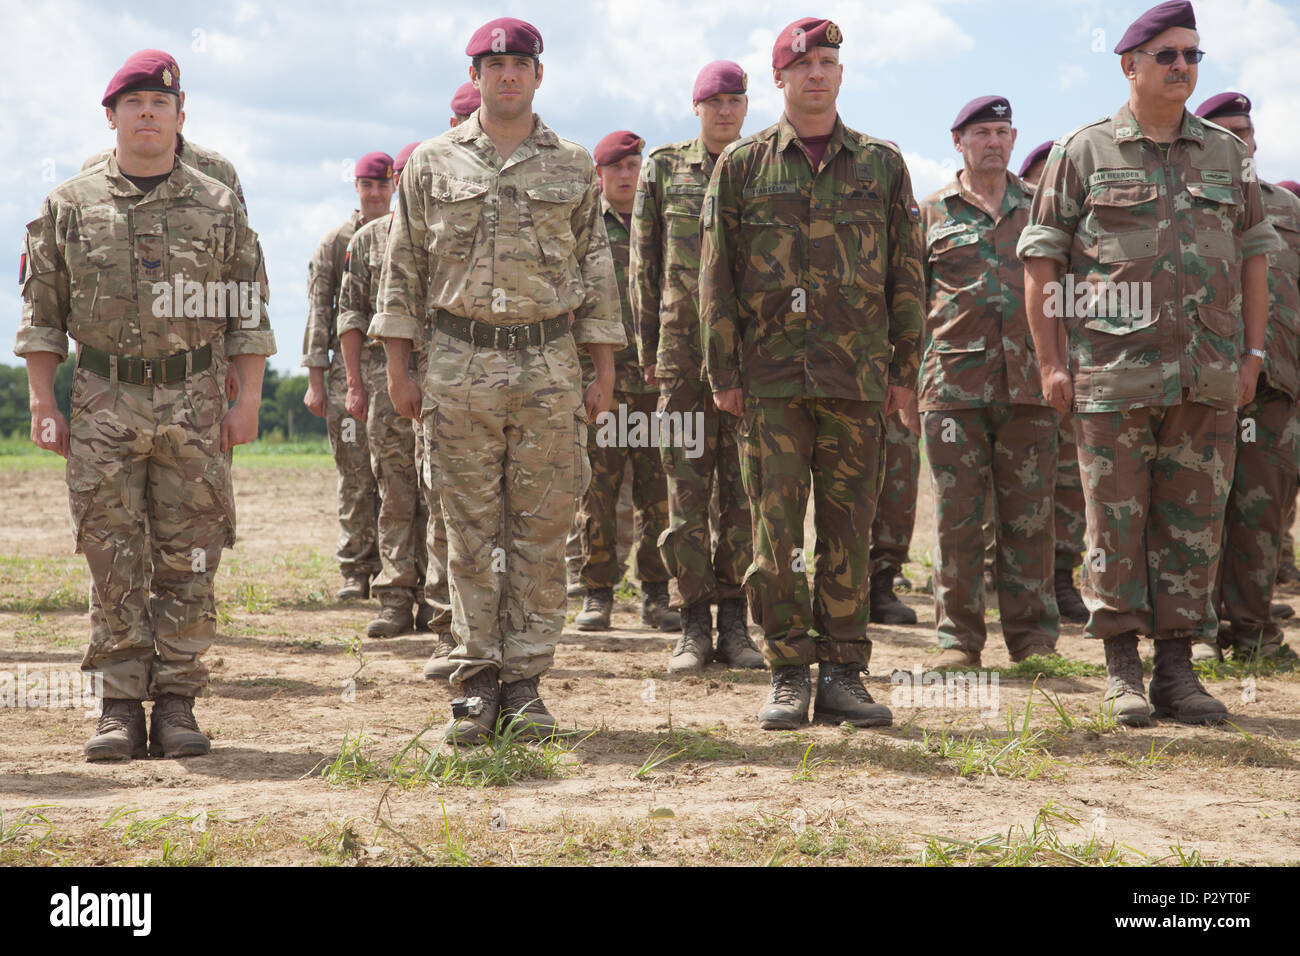 British Army, South African Army, and Dutch Paratroopers earn their